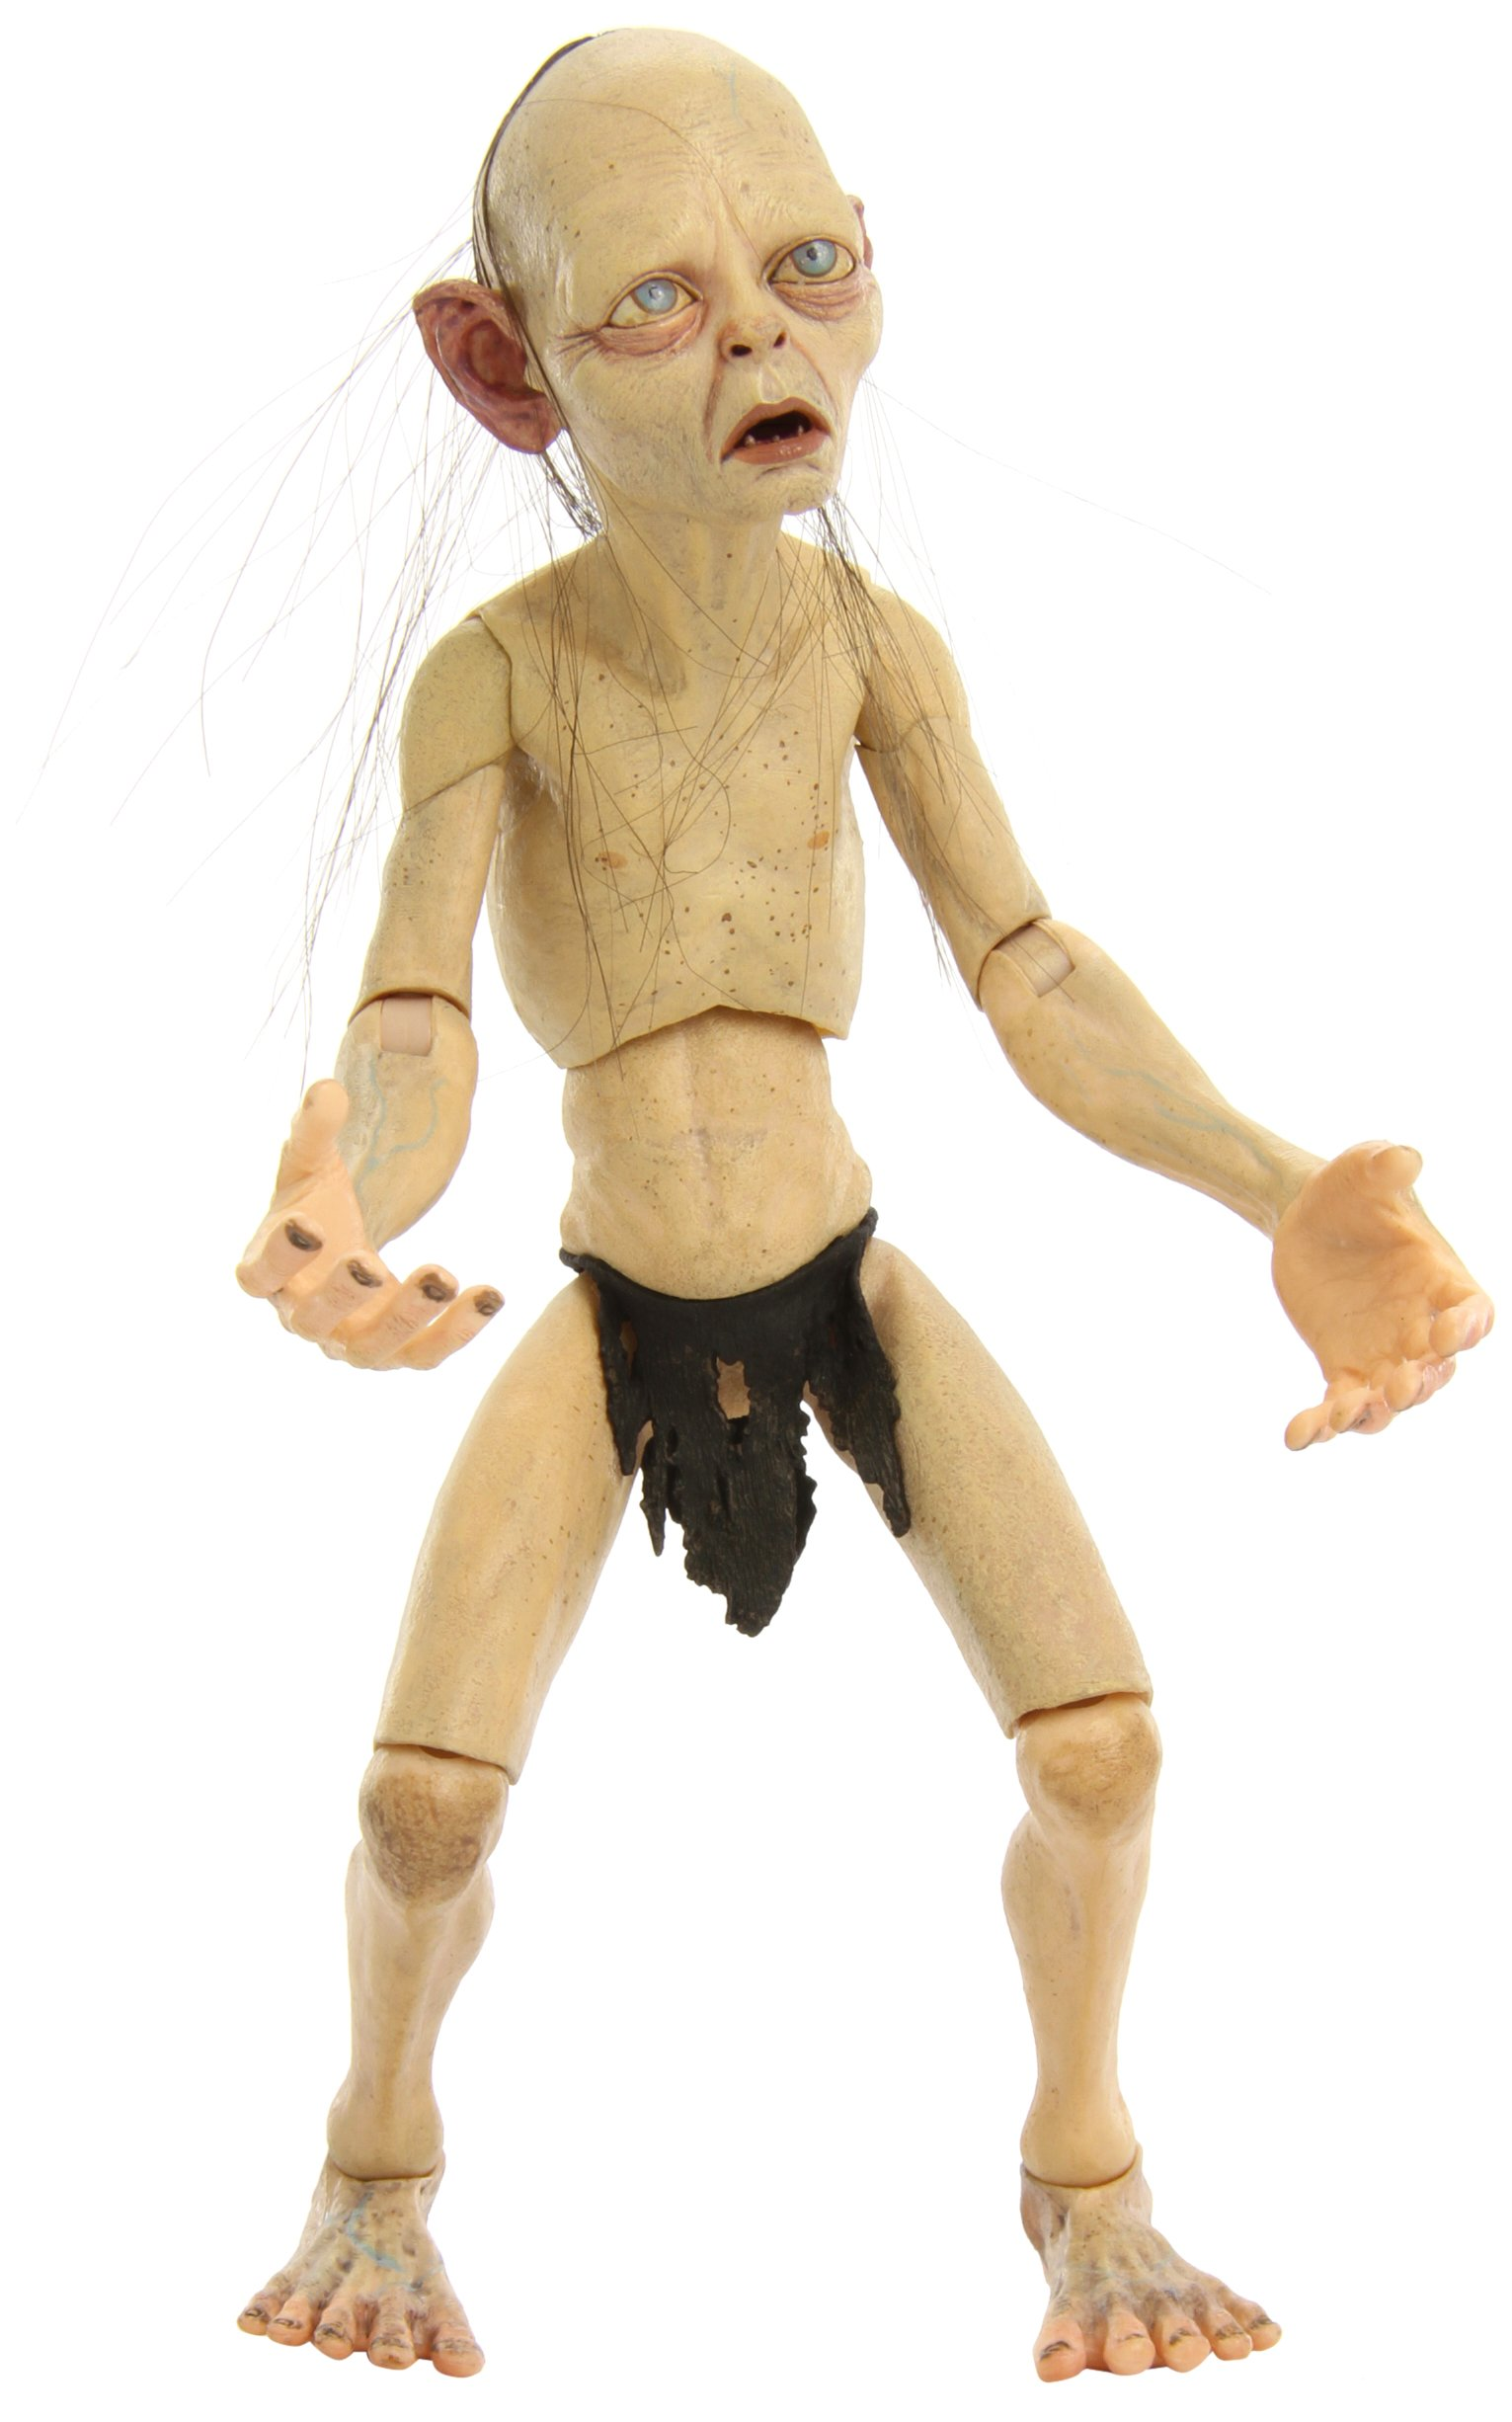 NECA Lord of The Rings Smeagol Action Figure, 1/4 Scale